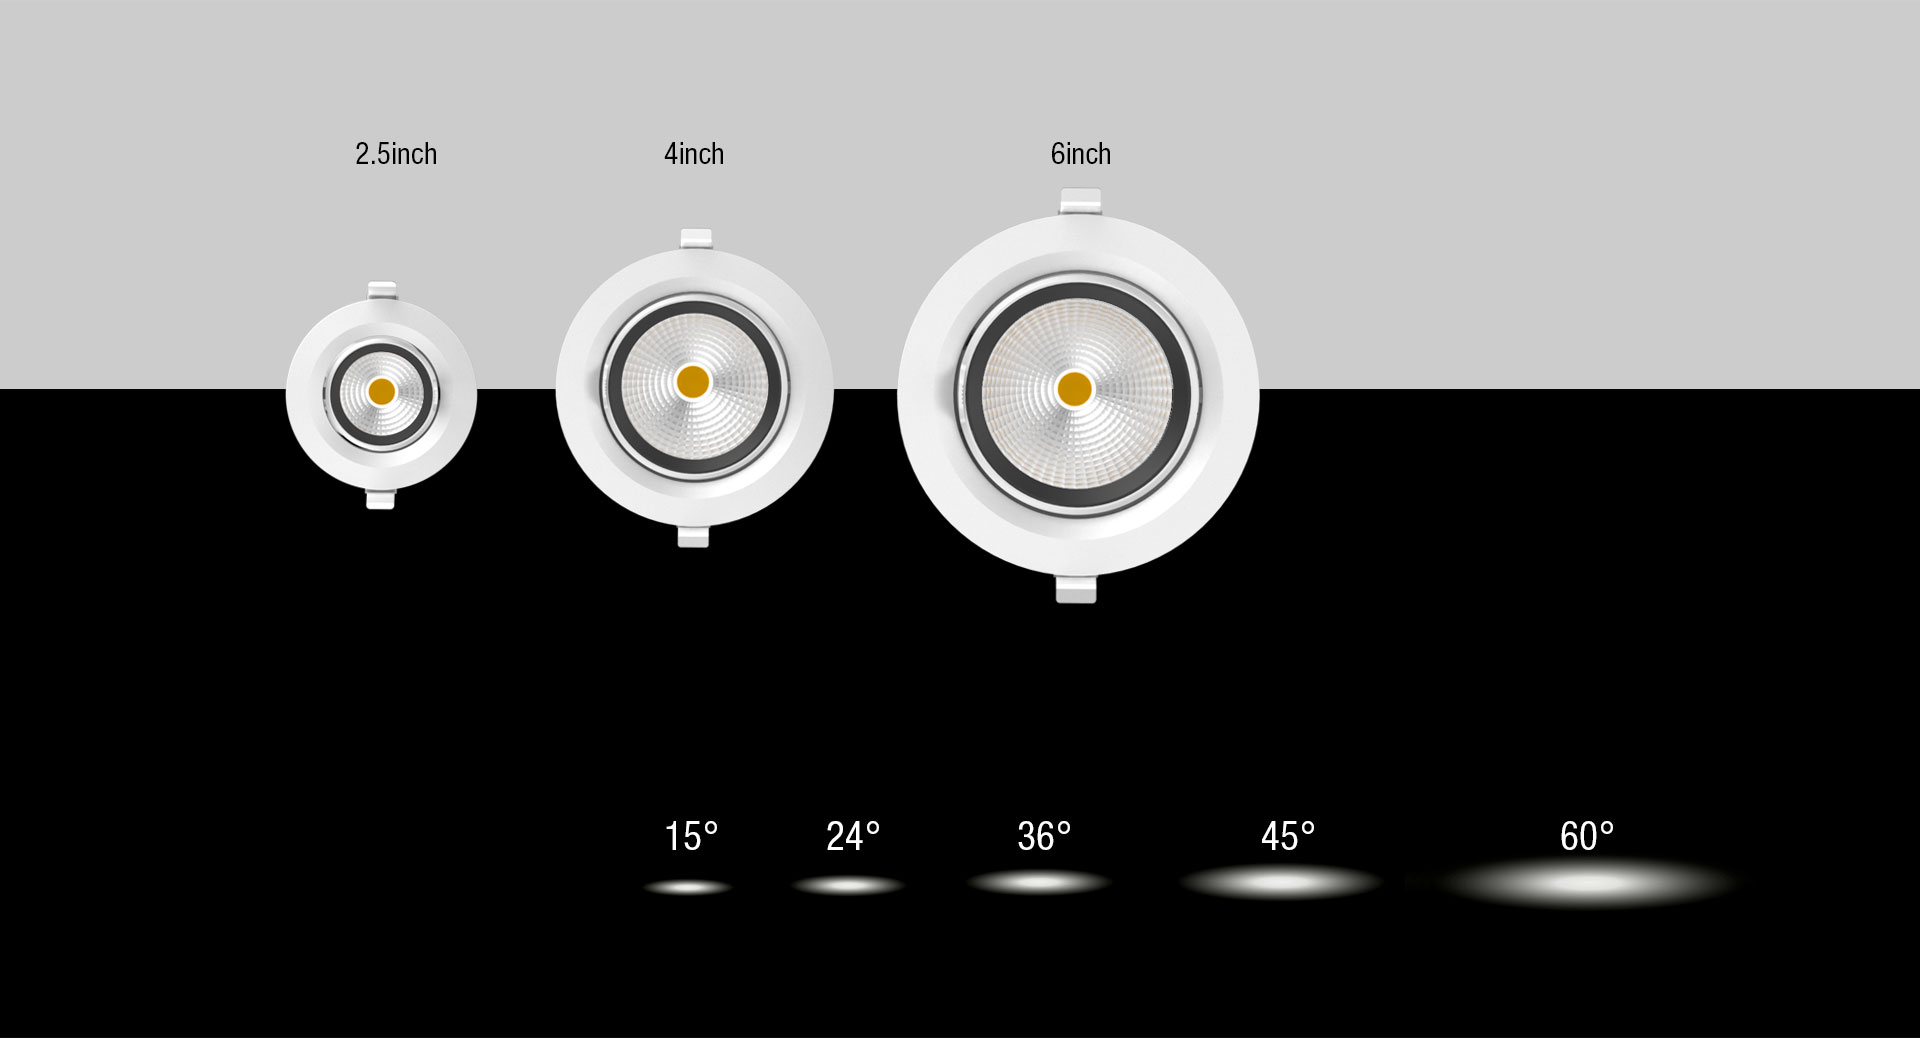 2.5Inch 3Inch 6Inch LED Down Light_04